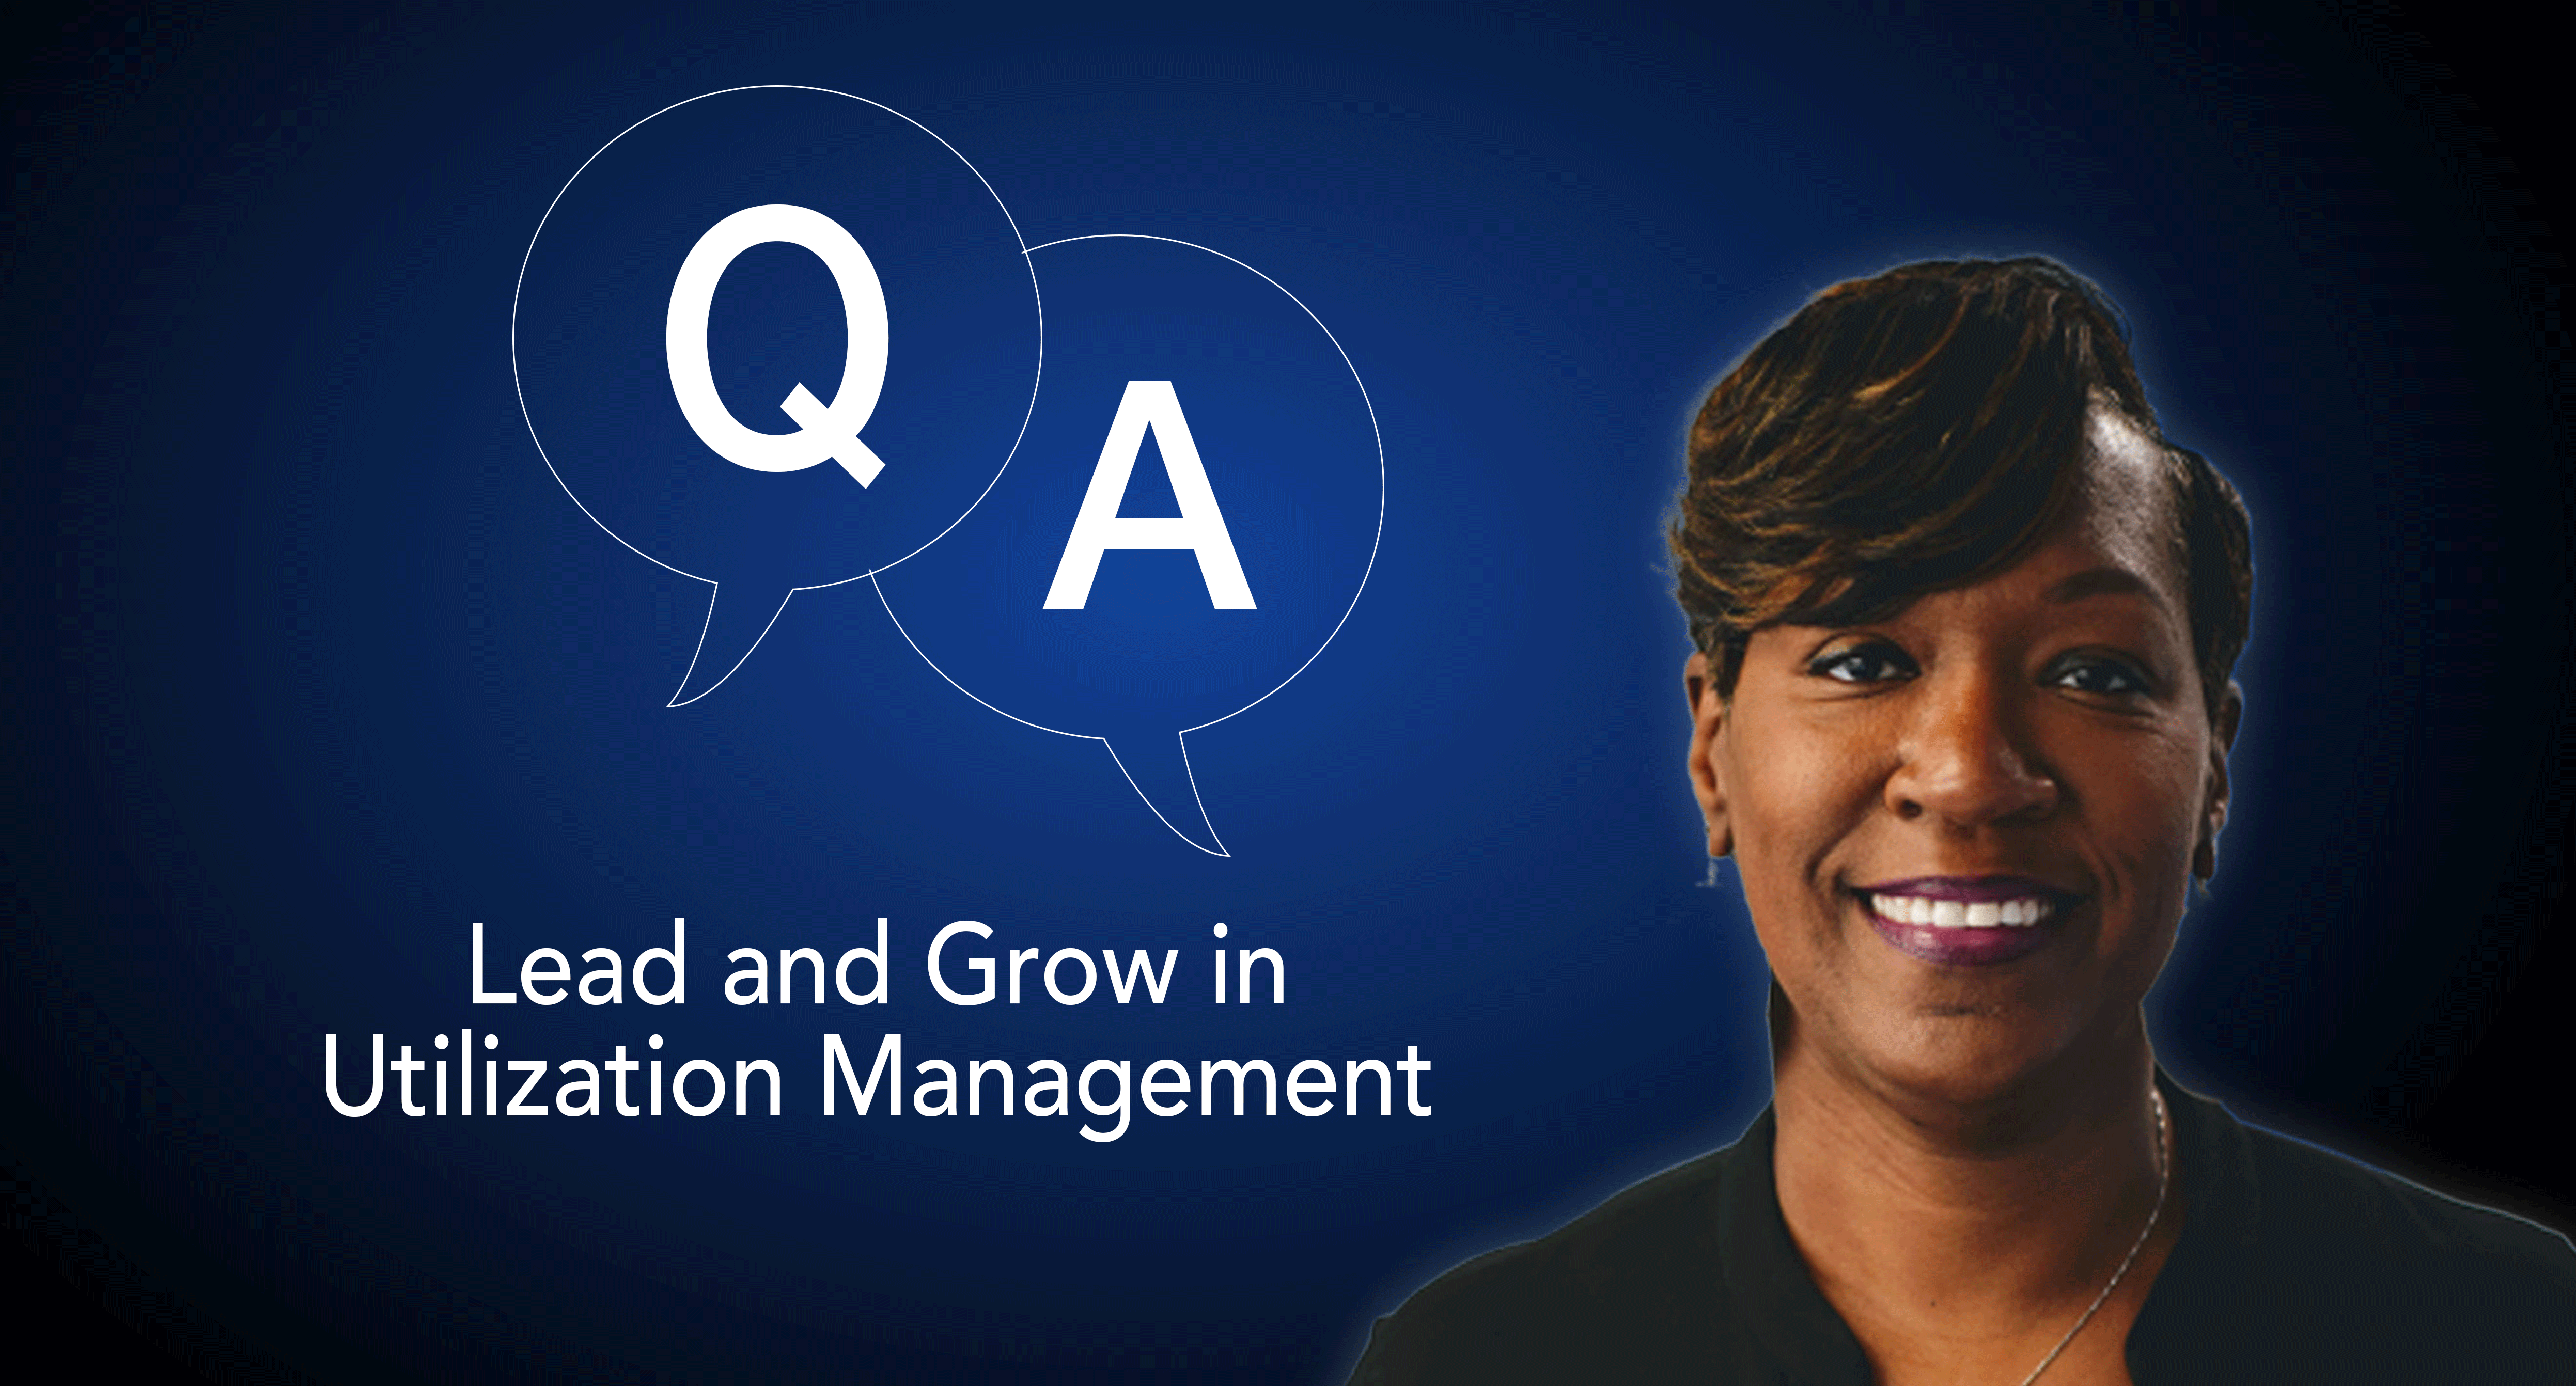 Lead and Grow in Utilization Management – Q&A with Michelle Wyatt